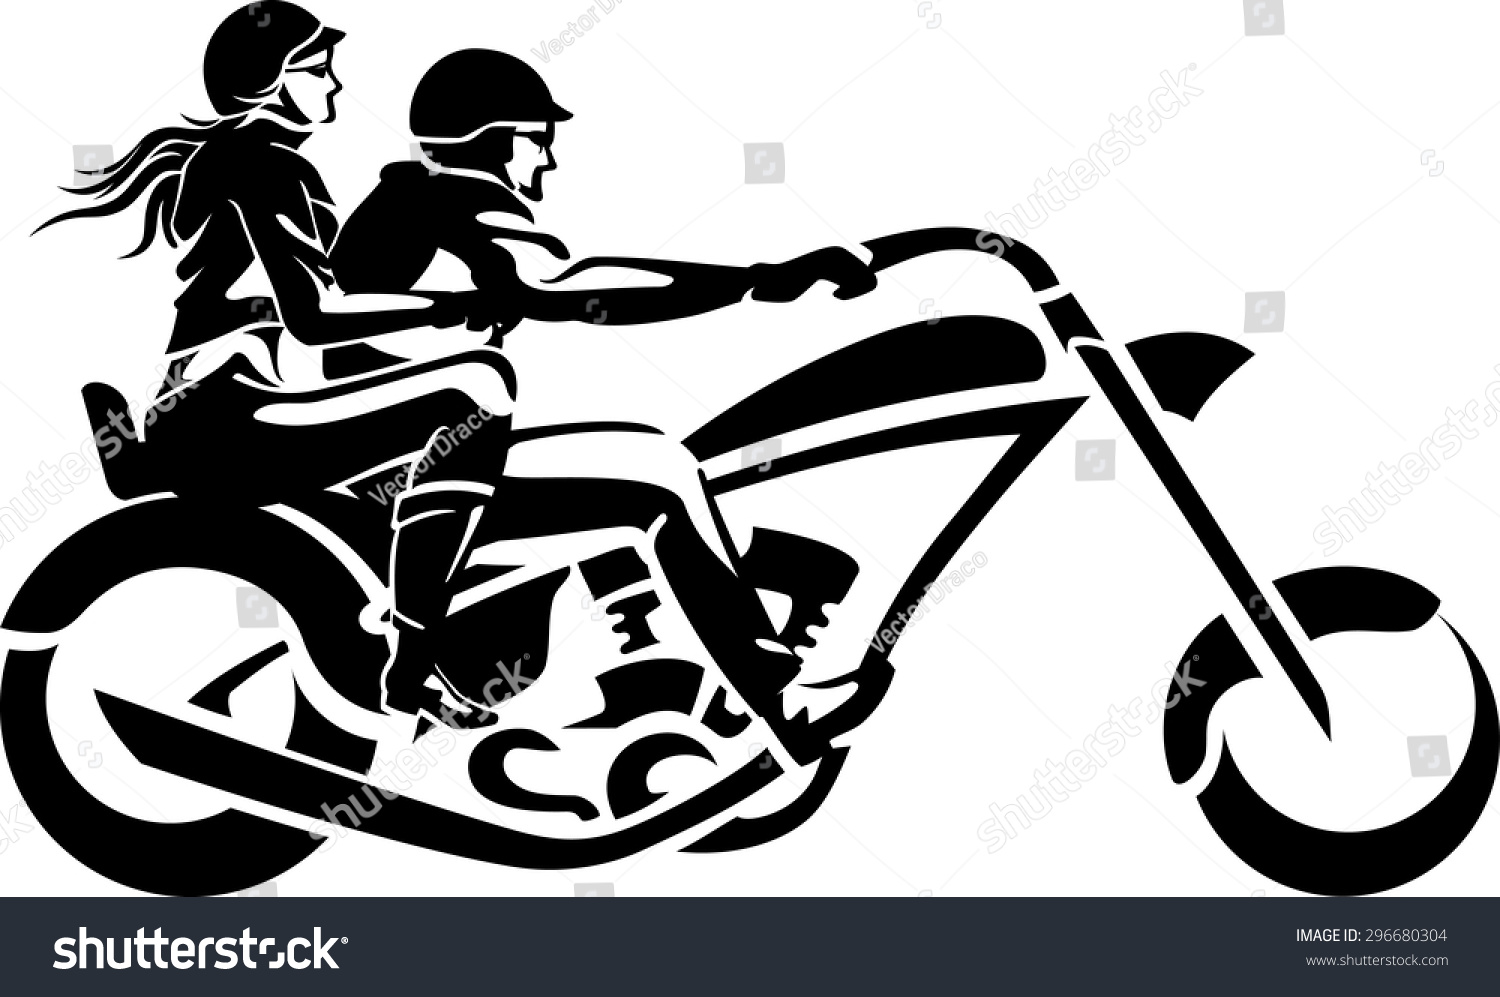 Motorcycle Chopper Couple Ride Stock Vector Illustration ...